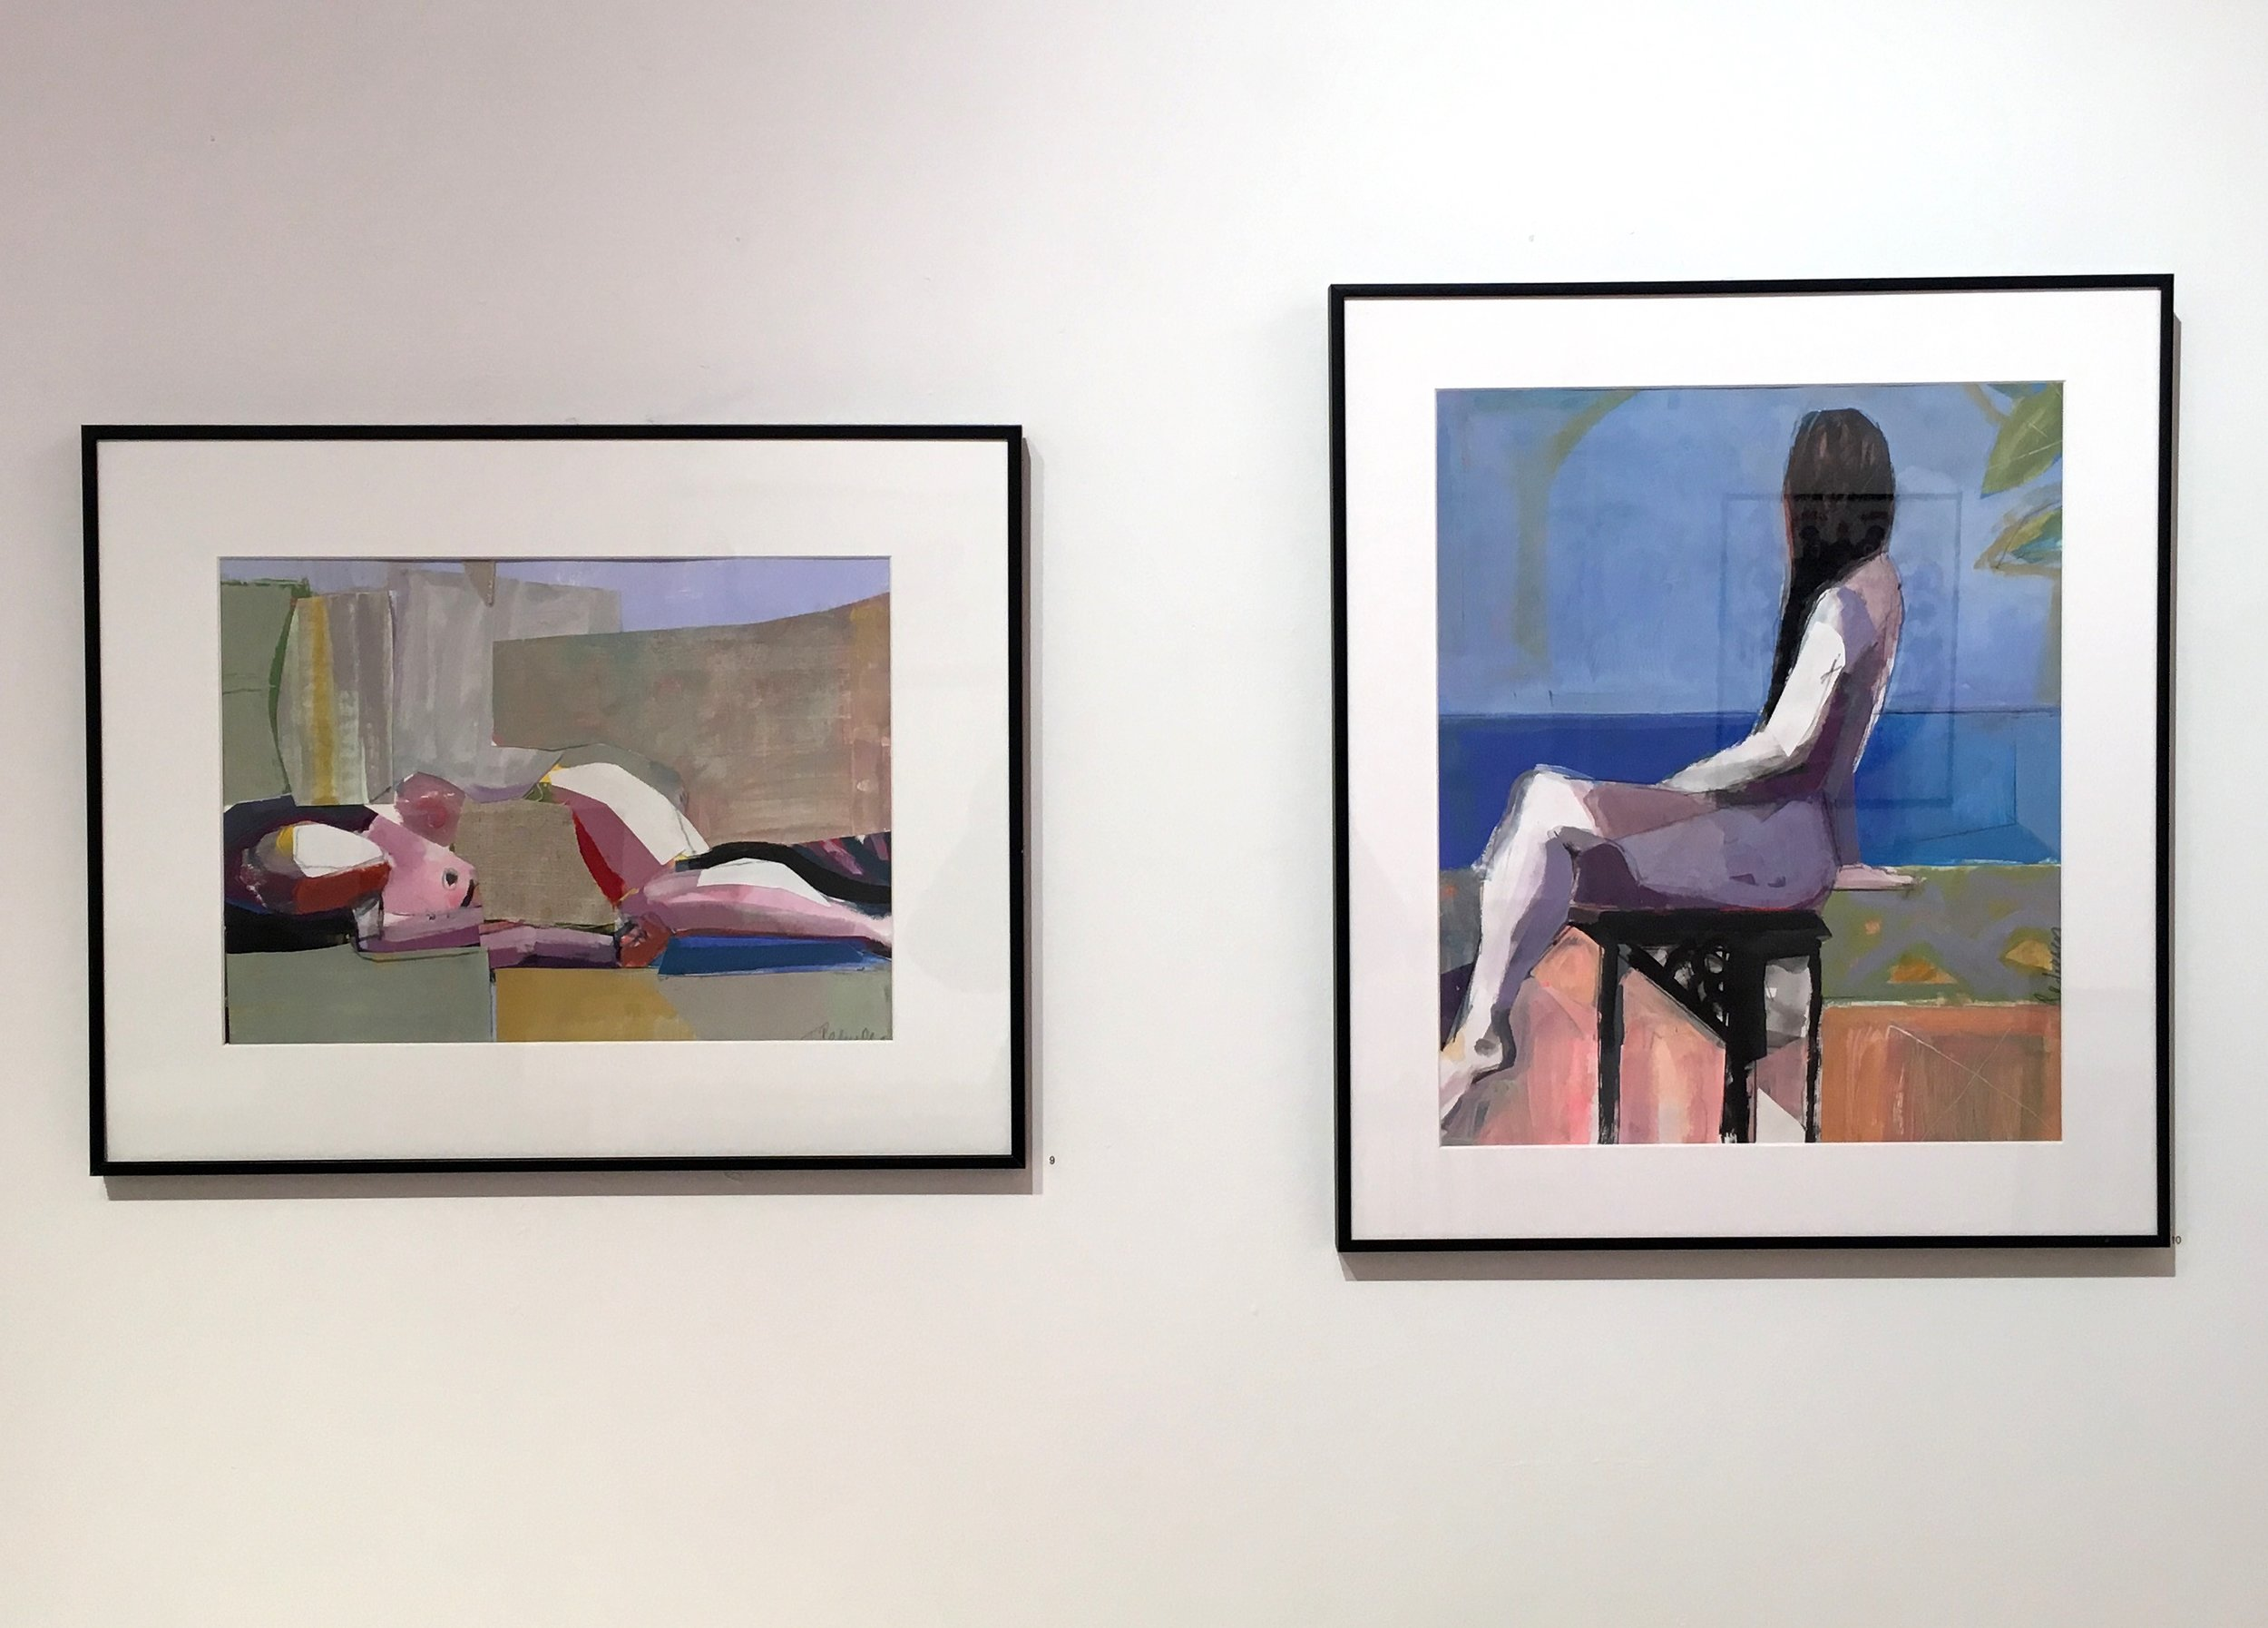 Figurative Collages - On display through Feb 11, 2019 In the Project Space at 440 Gallery. Come see!